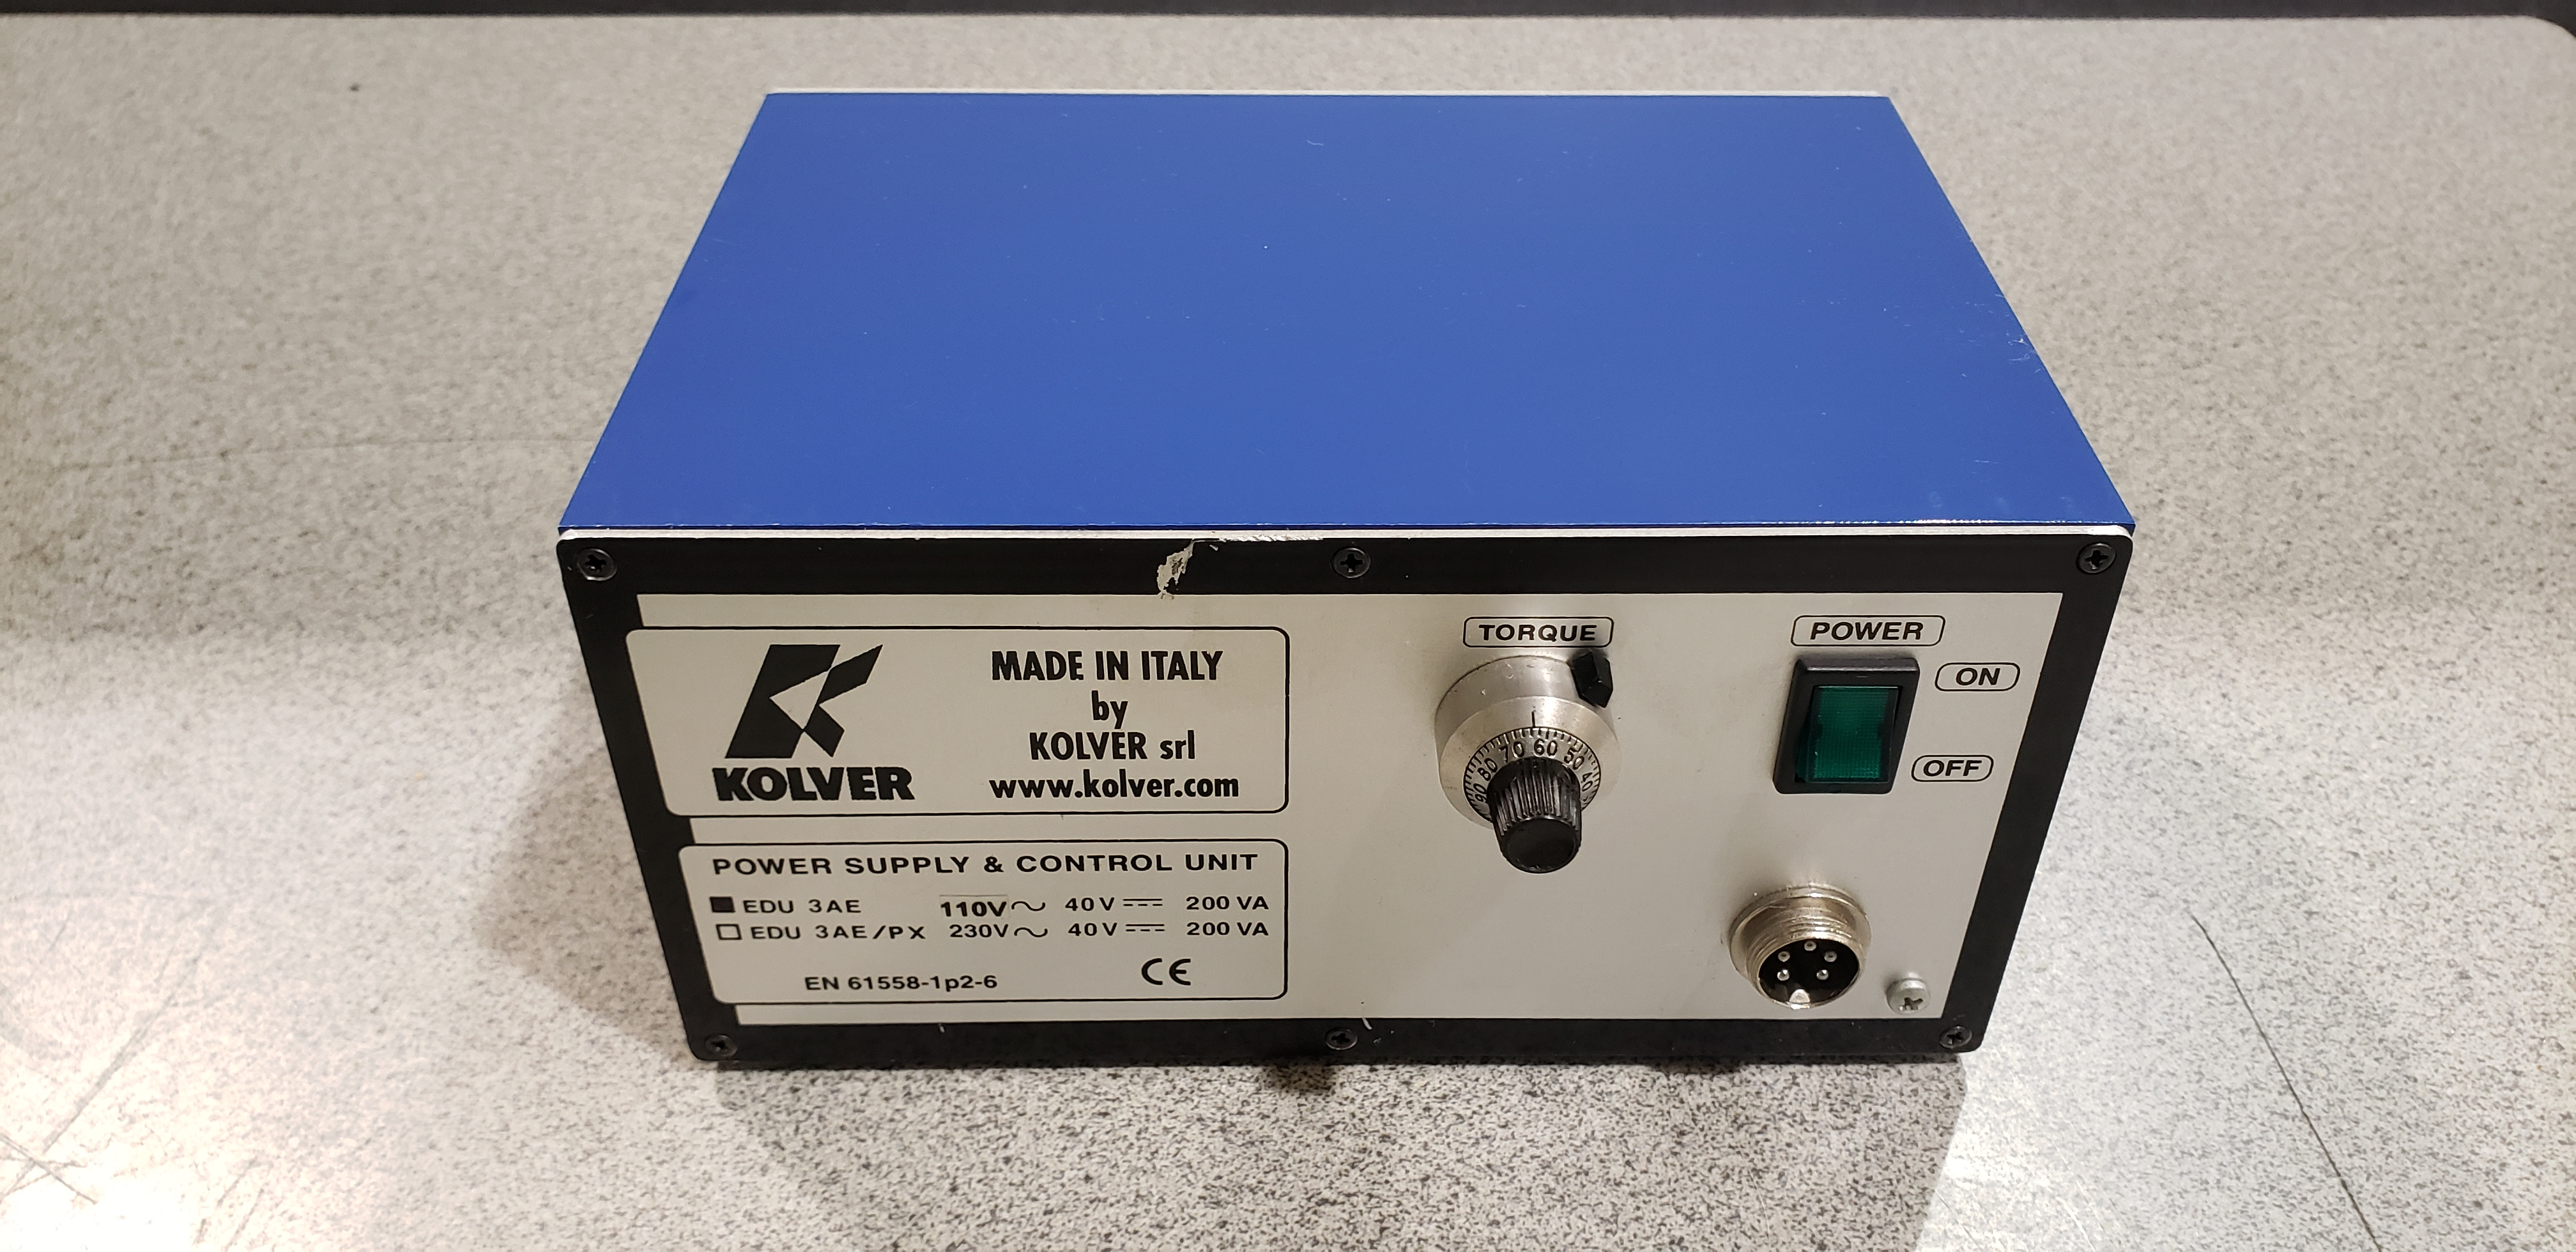 Kolver EN-61558-1P2-6  Power Supply & Control Unit